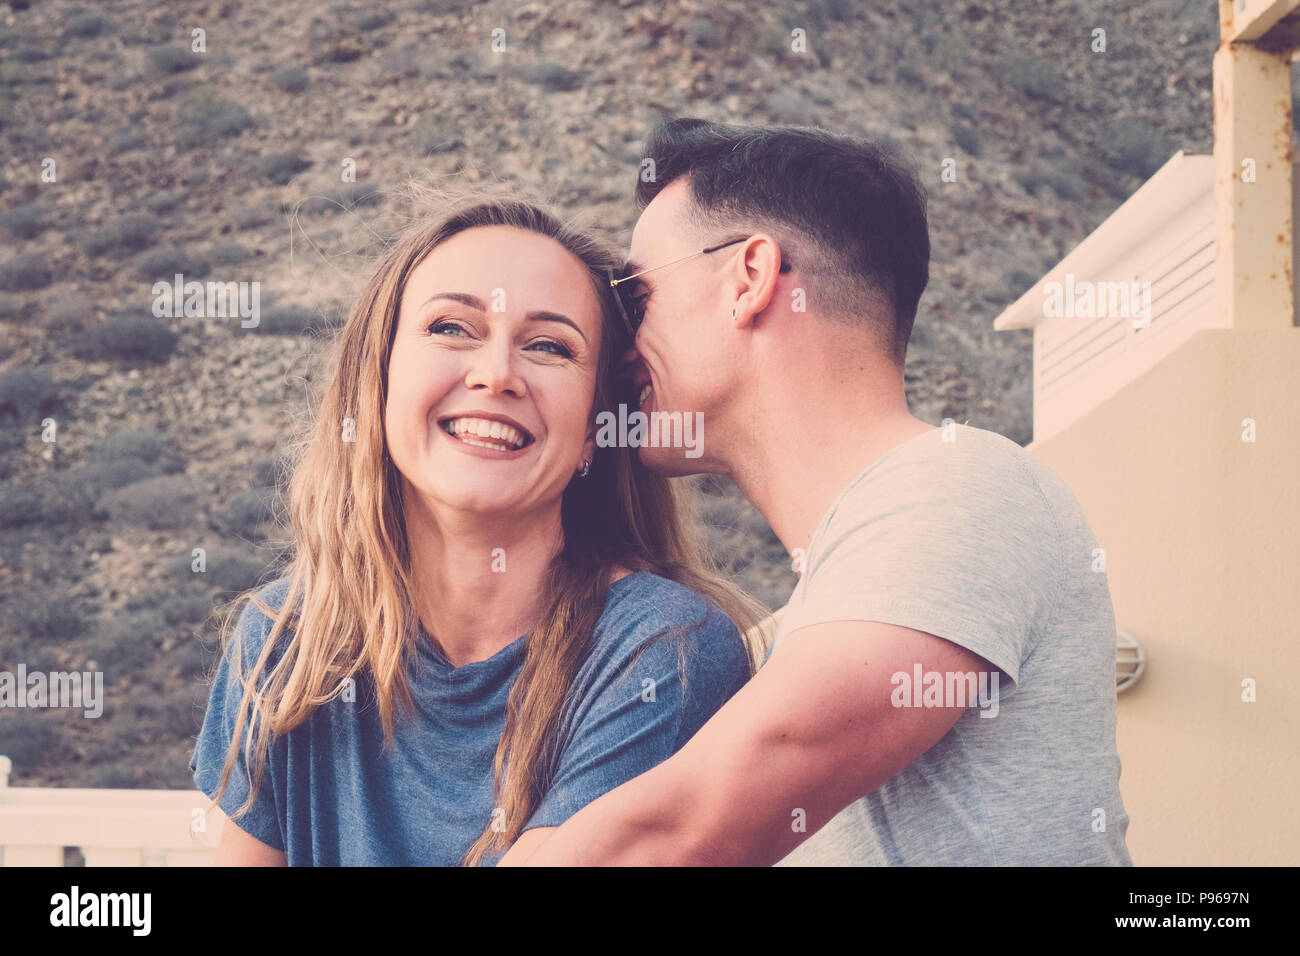 nice young couple caucasian in love together flirt and enjoy romantic time together on the terrace with mountain natural backgorund. happiness and rel - Stock Image